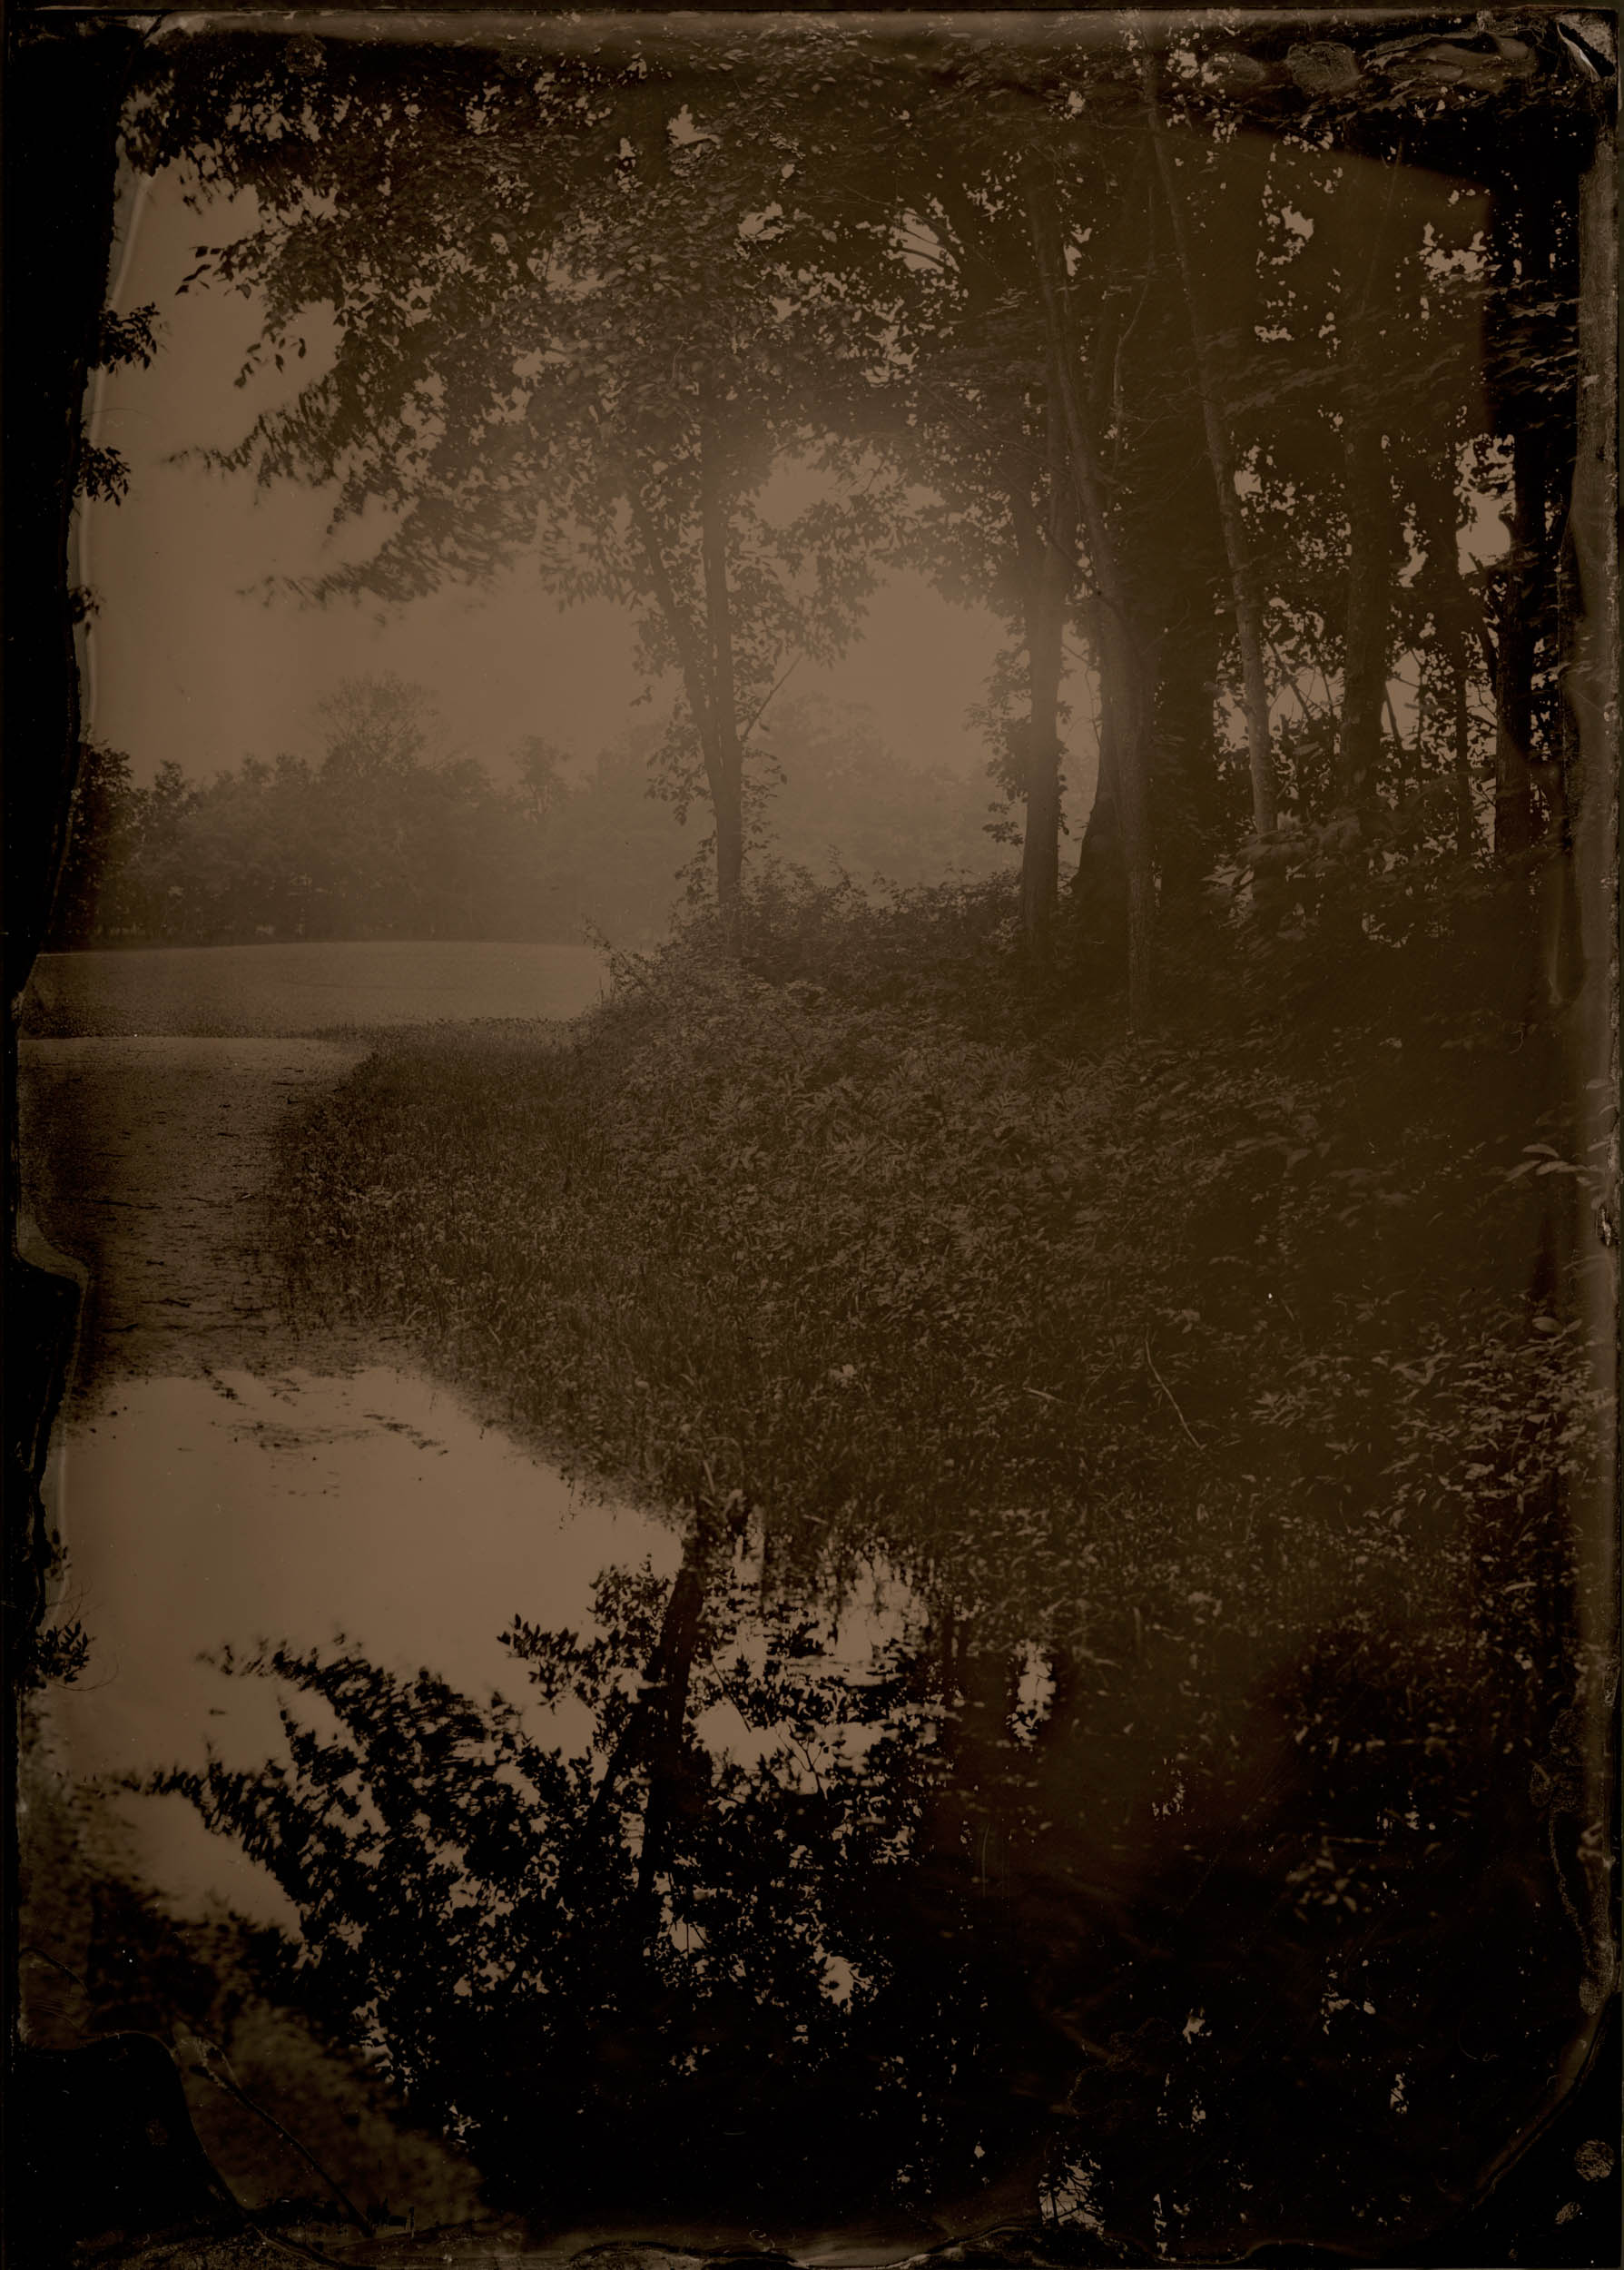 Mud Puddle, ambrotype original, archival pigment print, 40 in. x 50 in., 2018